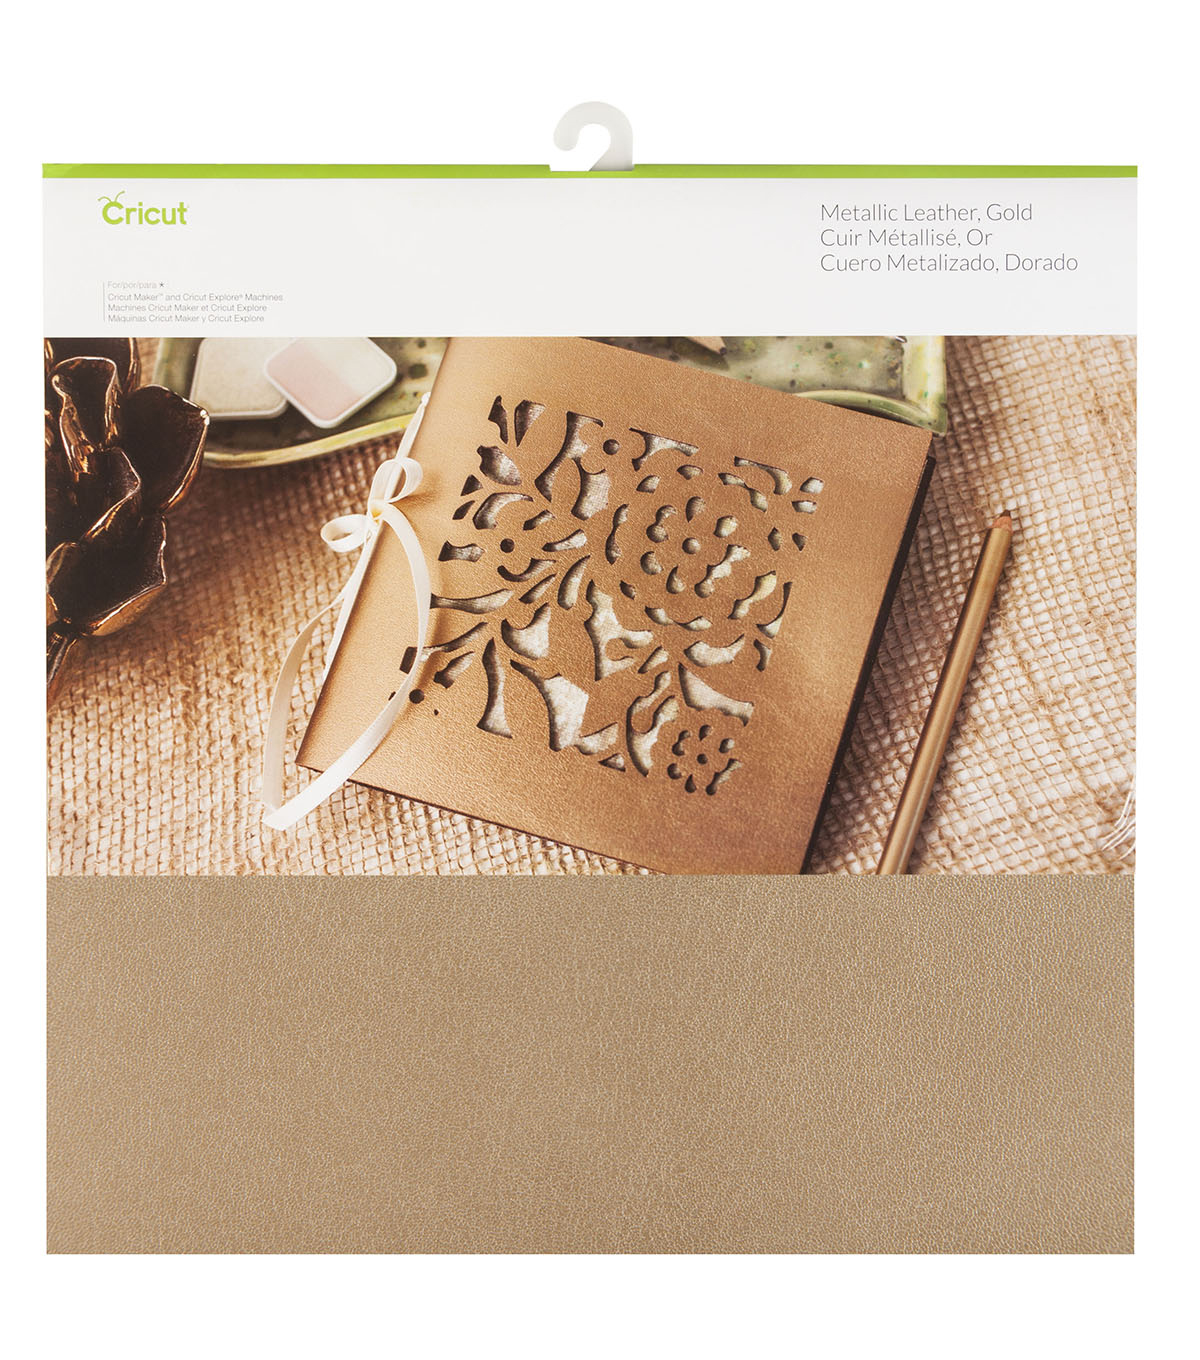 Cricut Metallic Leather Gold